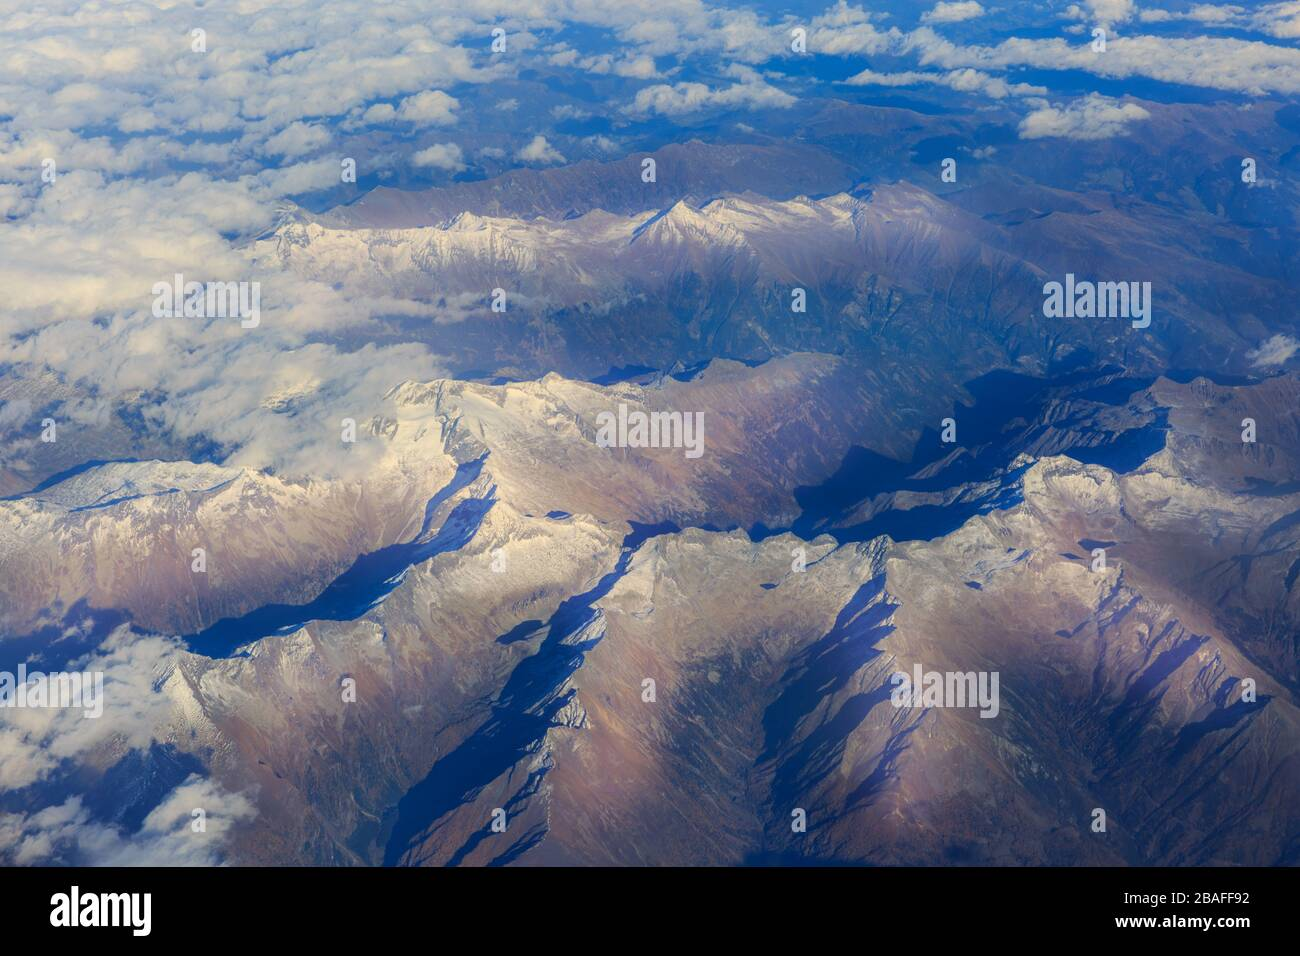 The Alps from above, Italian Alps and Dolomites aerial view, mountains with clear skies and sunshine, Europe Stock Photo